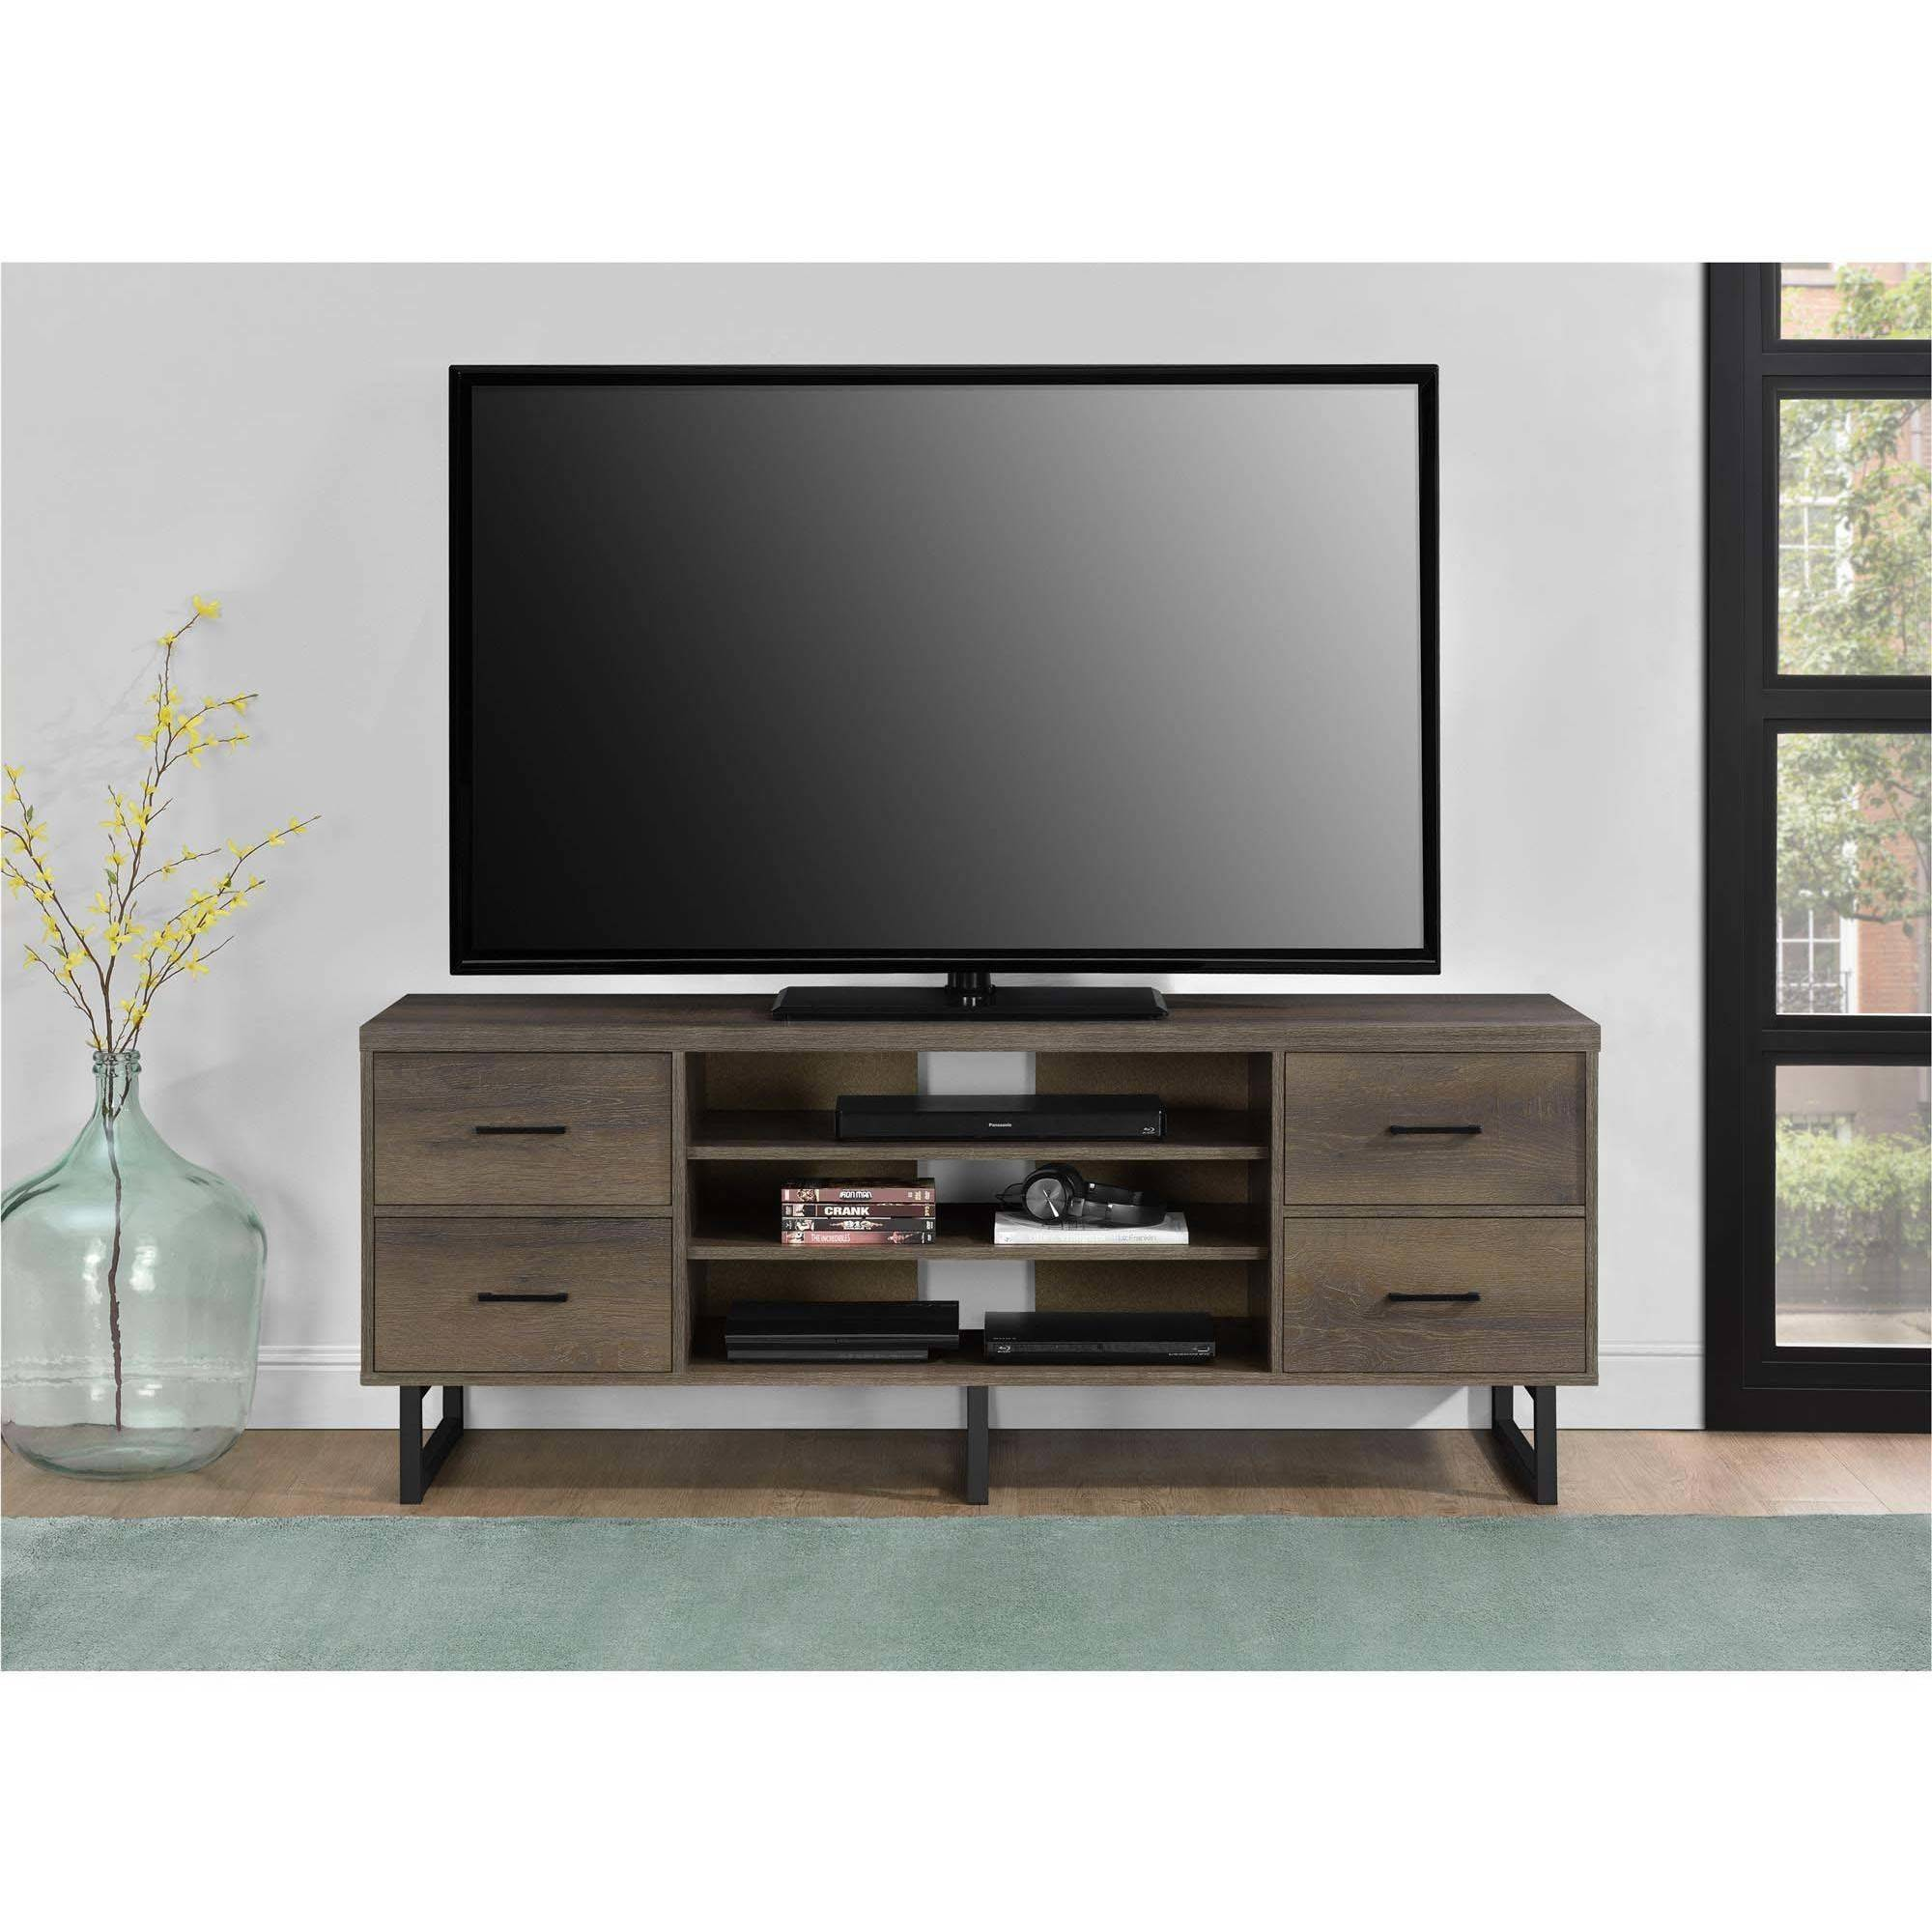 """Ameriwood Home Candon TV Stand with Bins for TVs up to 60"""" wide, Distressed Brown Oak"""